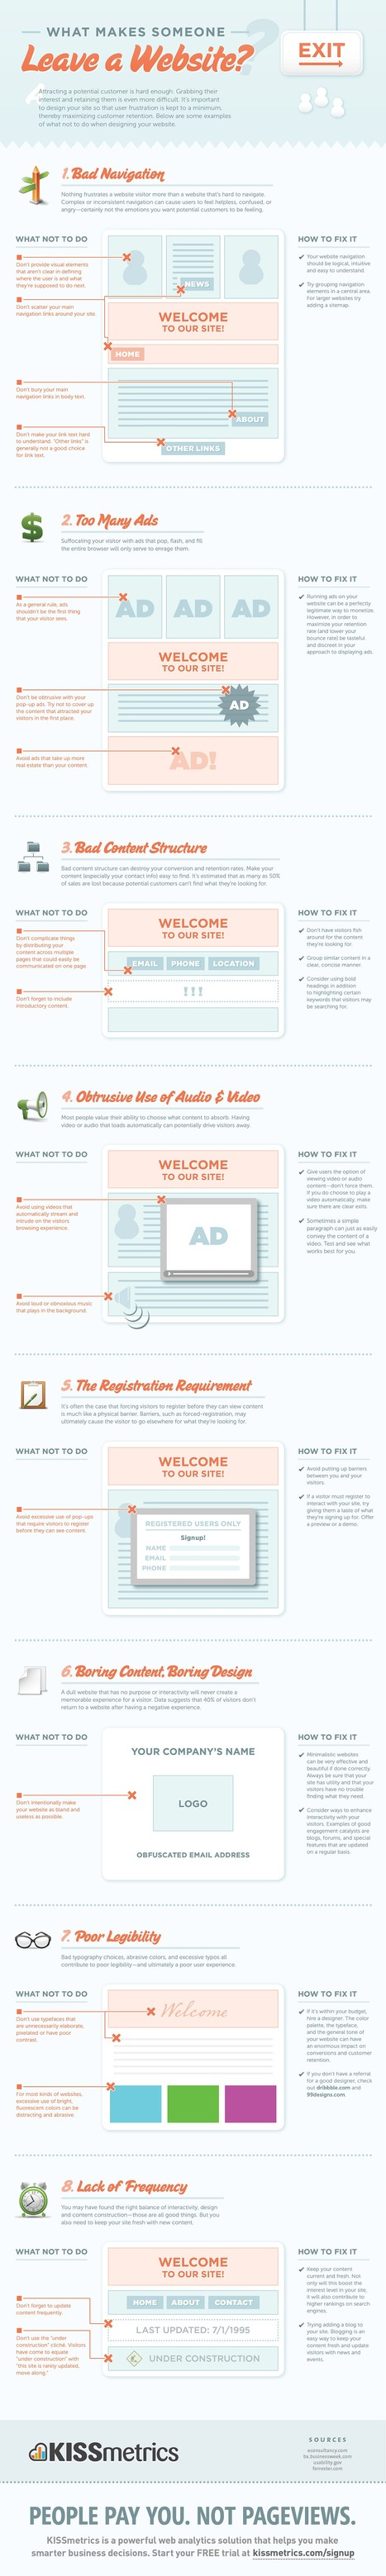 What Makes Someone Leave A Website? (Infographic) | Doeland's Digitale Wereld | Scoop.it